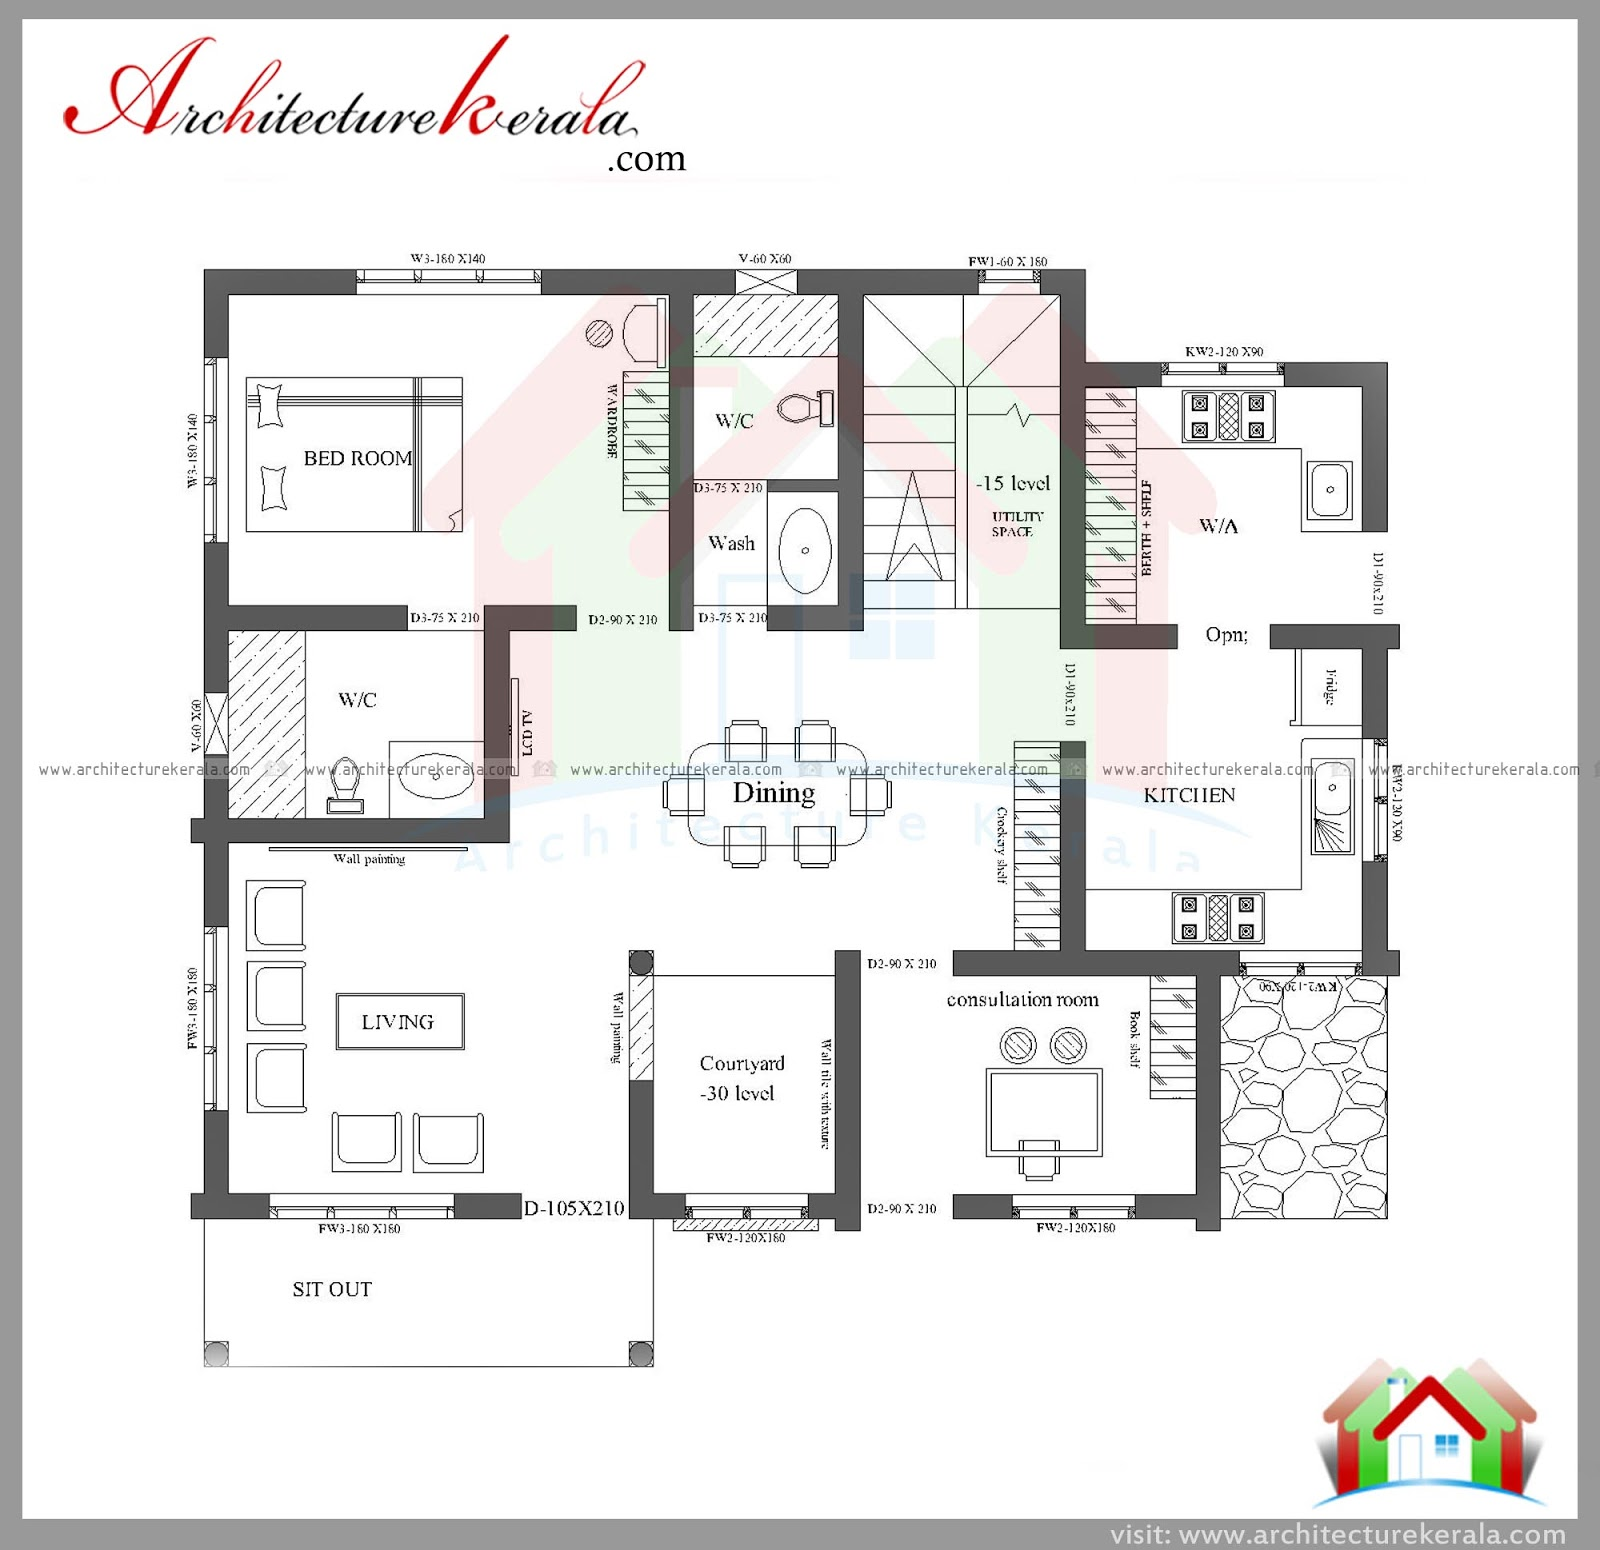 Three bedroom house plan and elevation in 2000 sq ft for Kerala house plan images